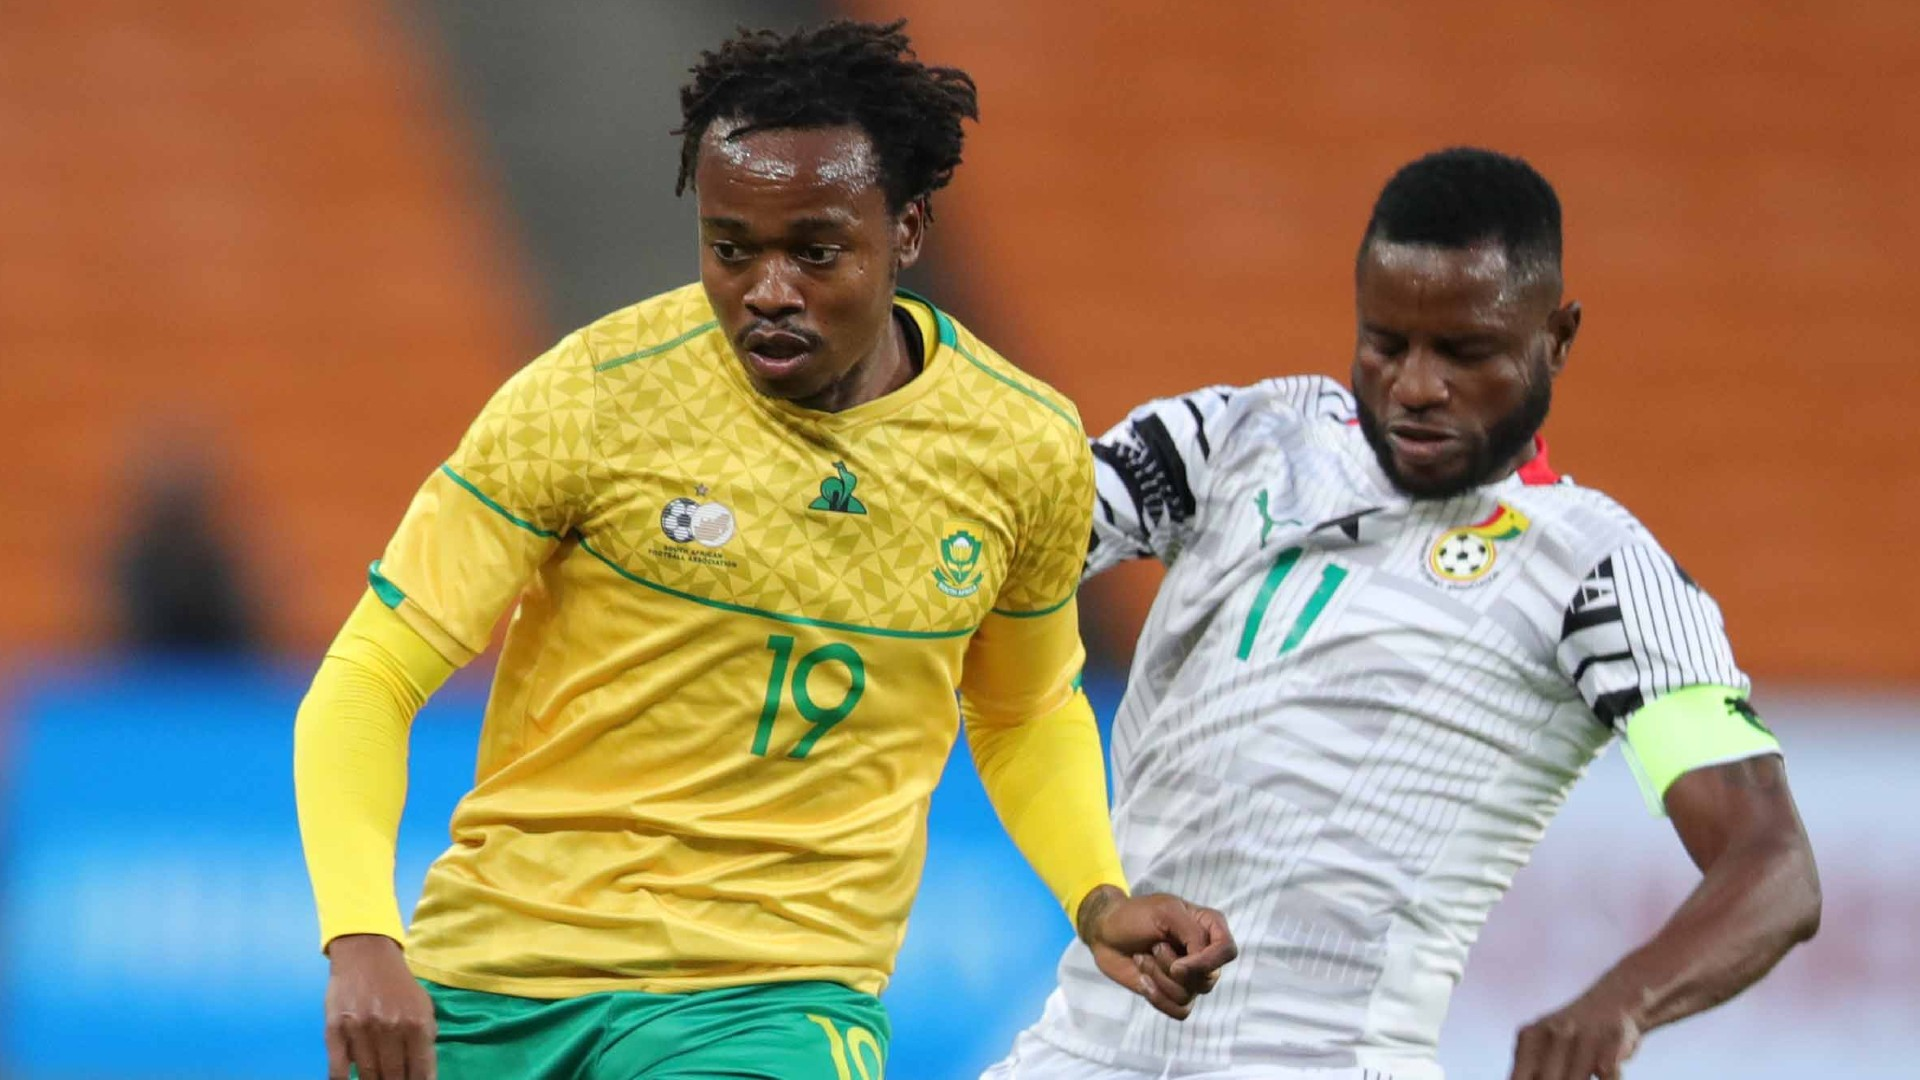 South Africa 1-1 Ghana: Tau rescues Bafana Bafana against Black Stars in  Afcon qualifier | Goal.com